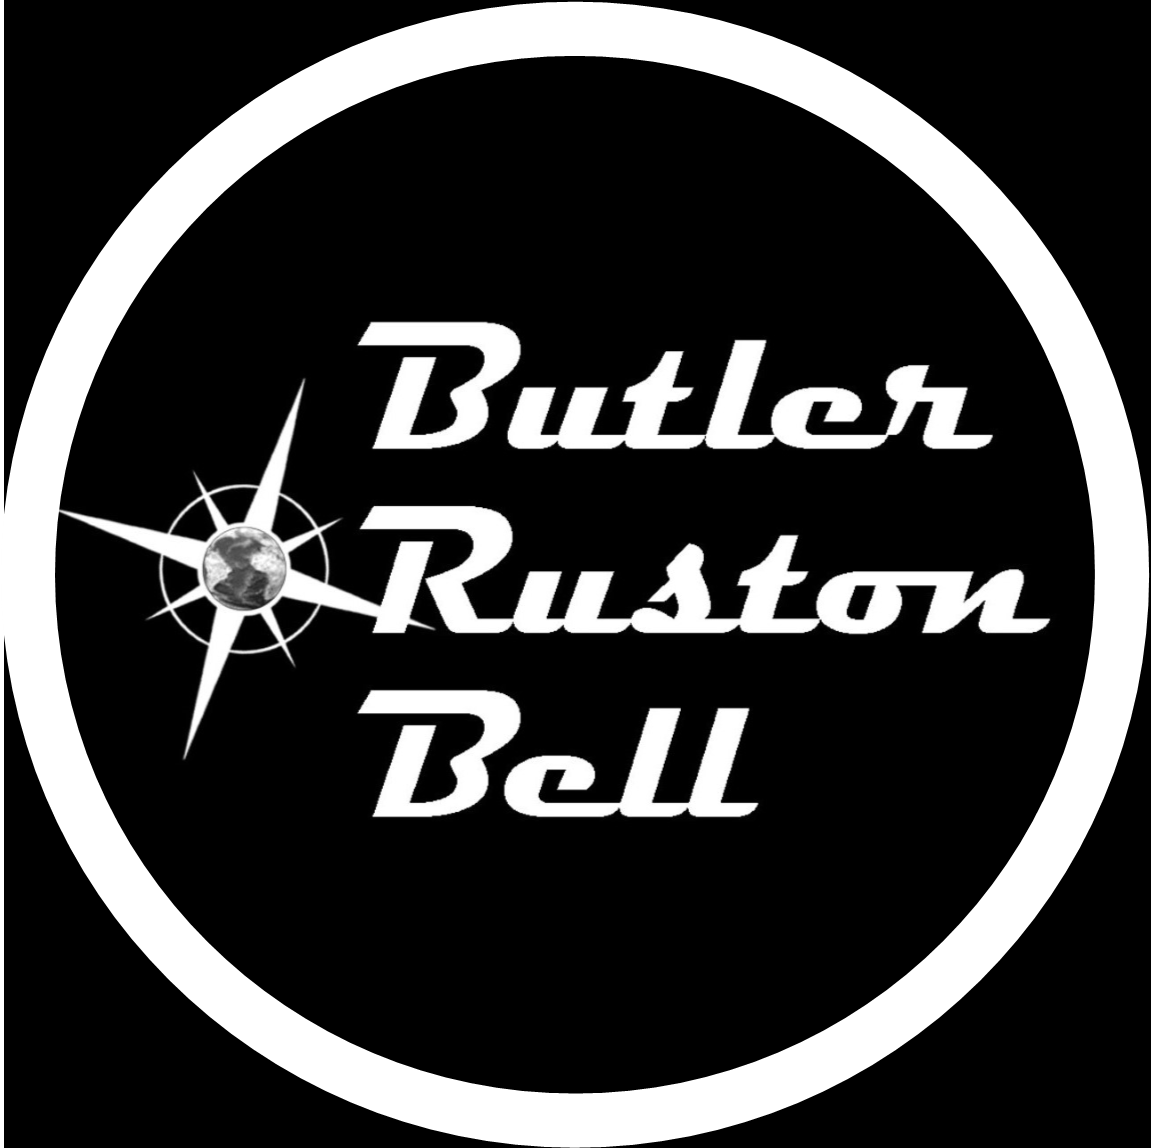 BUTLER RUSTON BELL TALENT ASSOCIATES